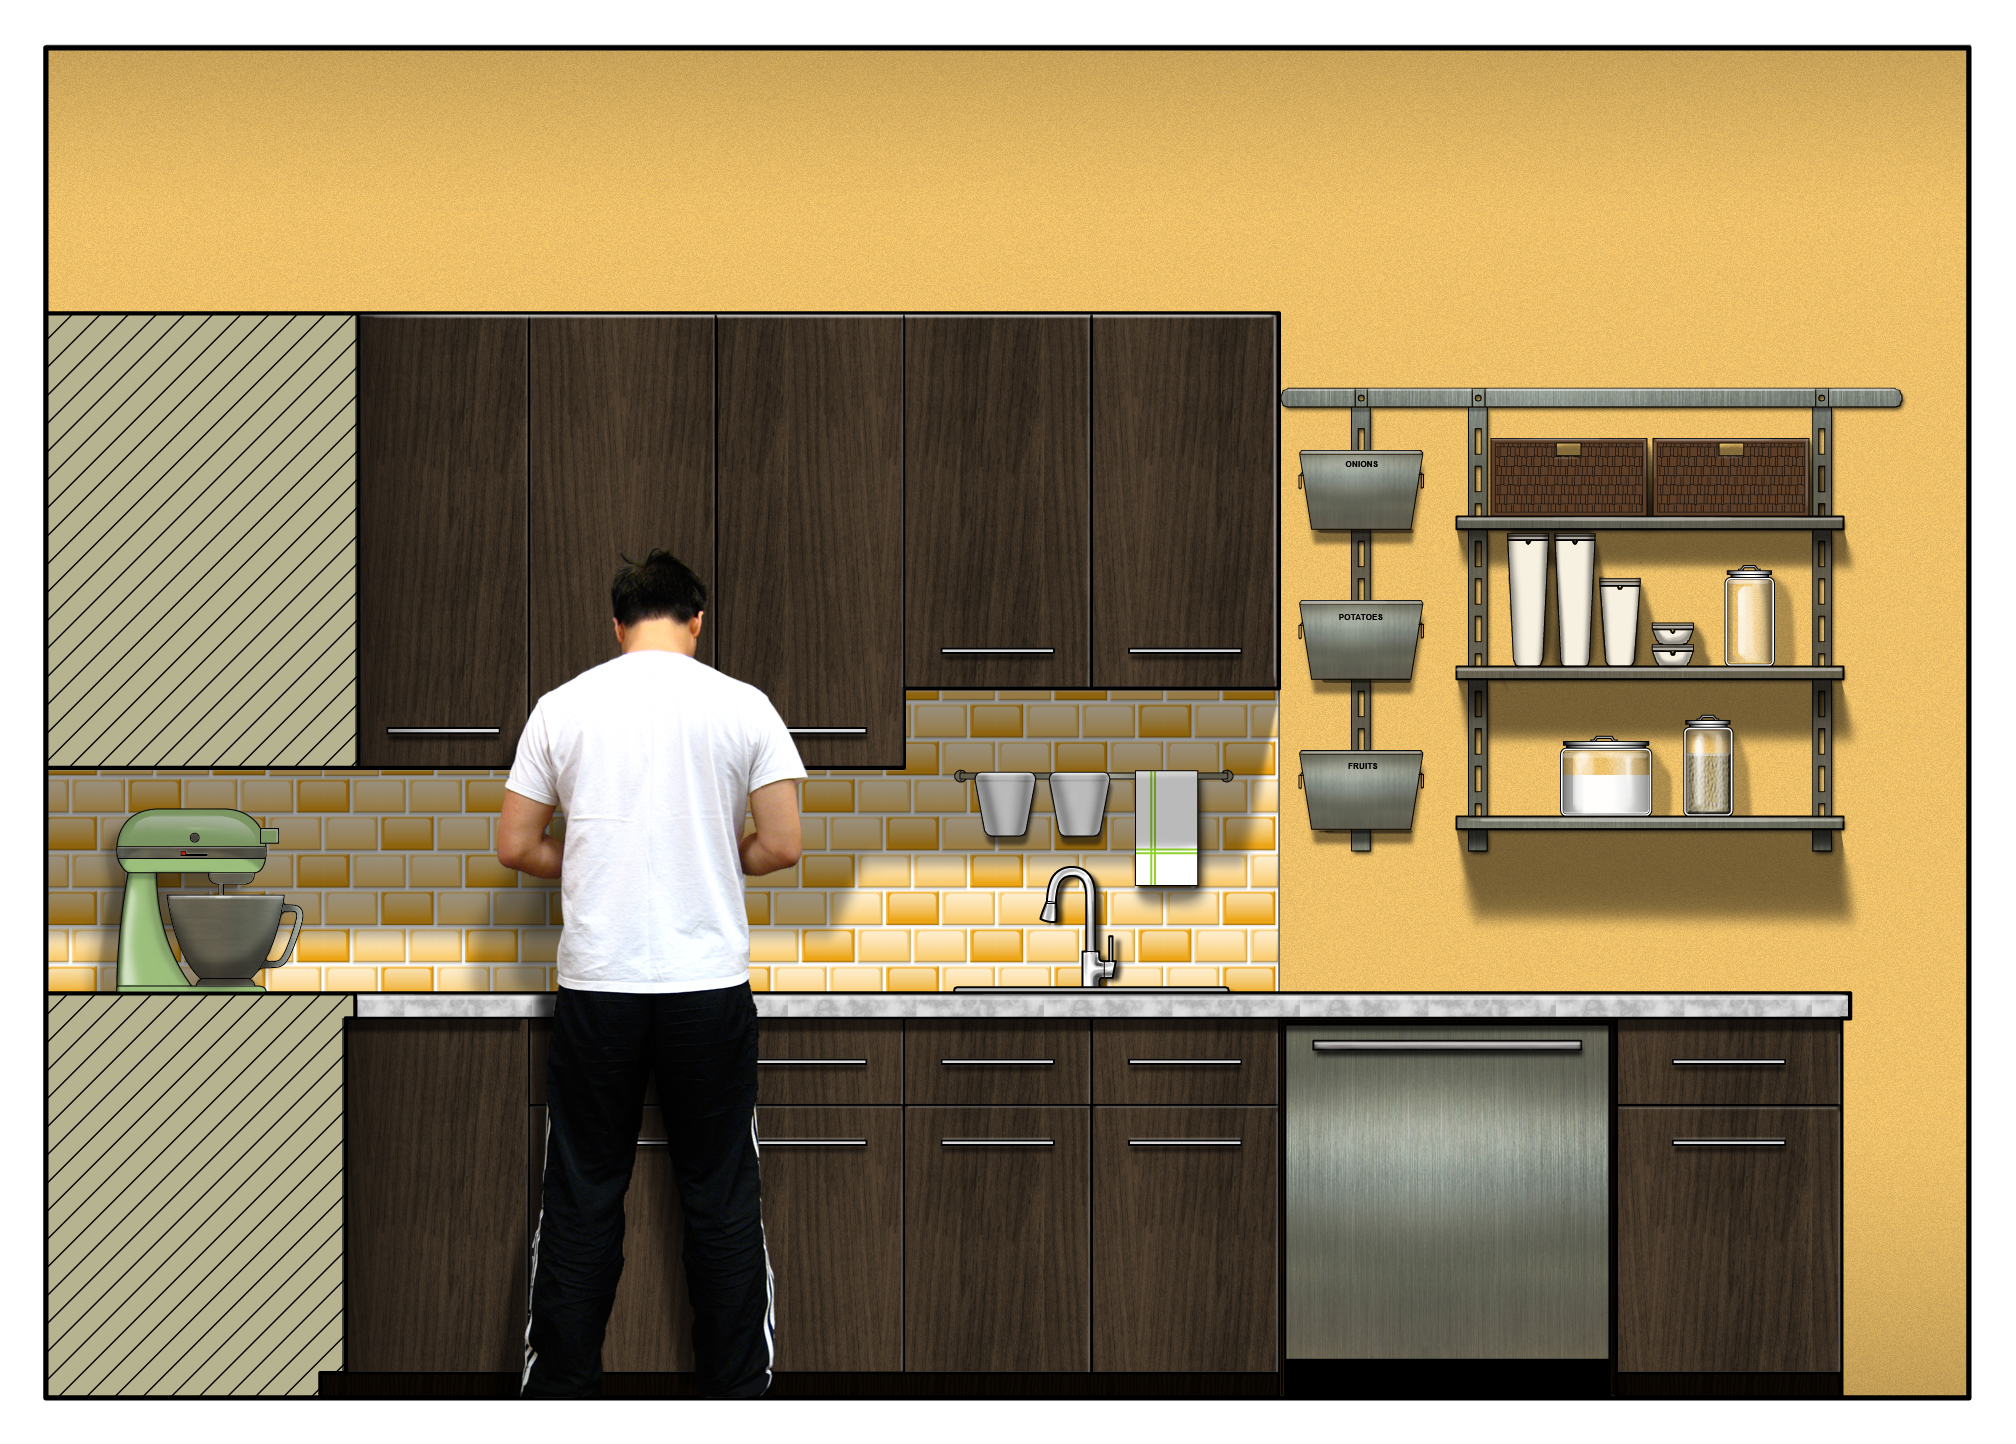 Autocad For Kitchen Design Digital Renderings By Linda Cho At Coroflotcom